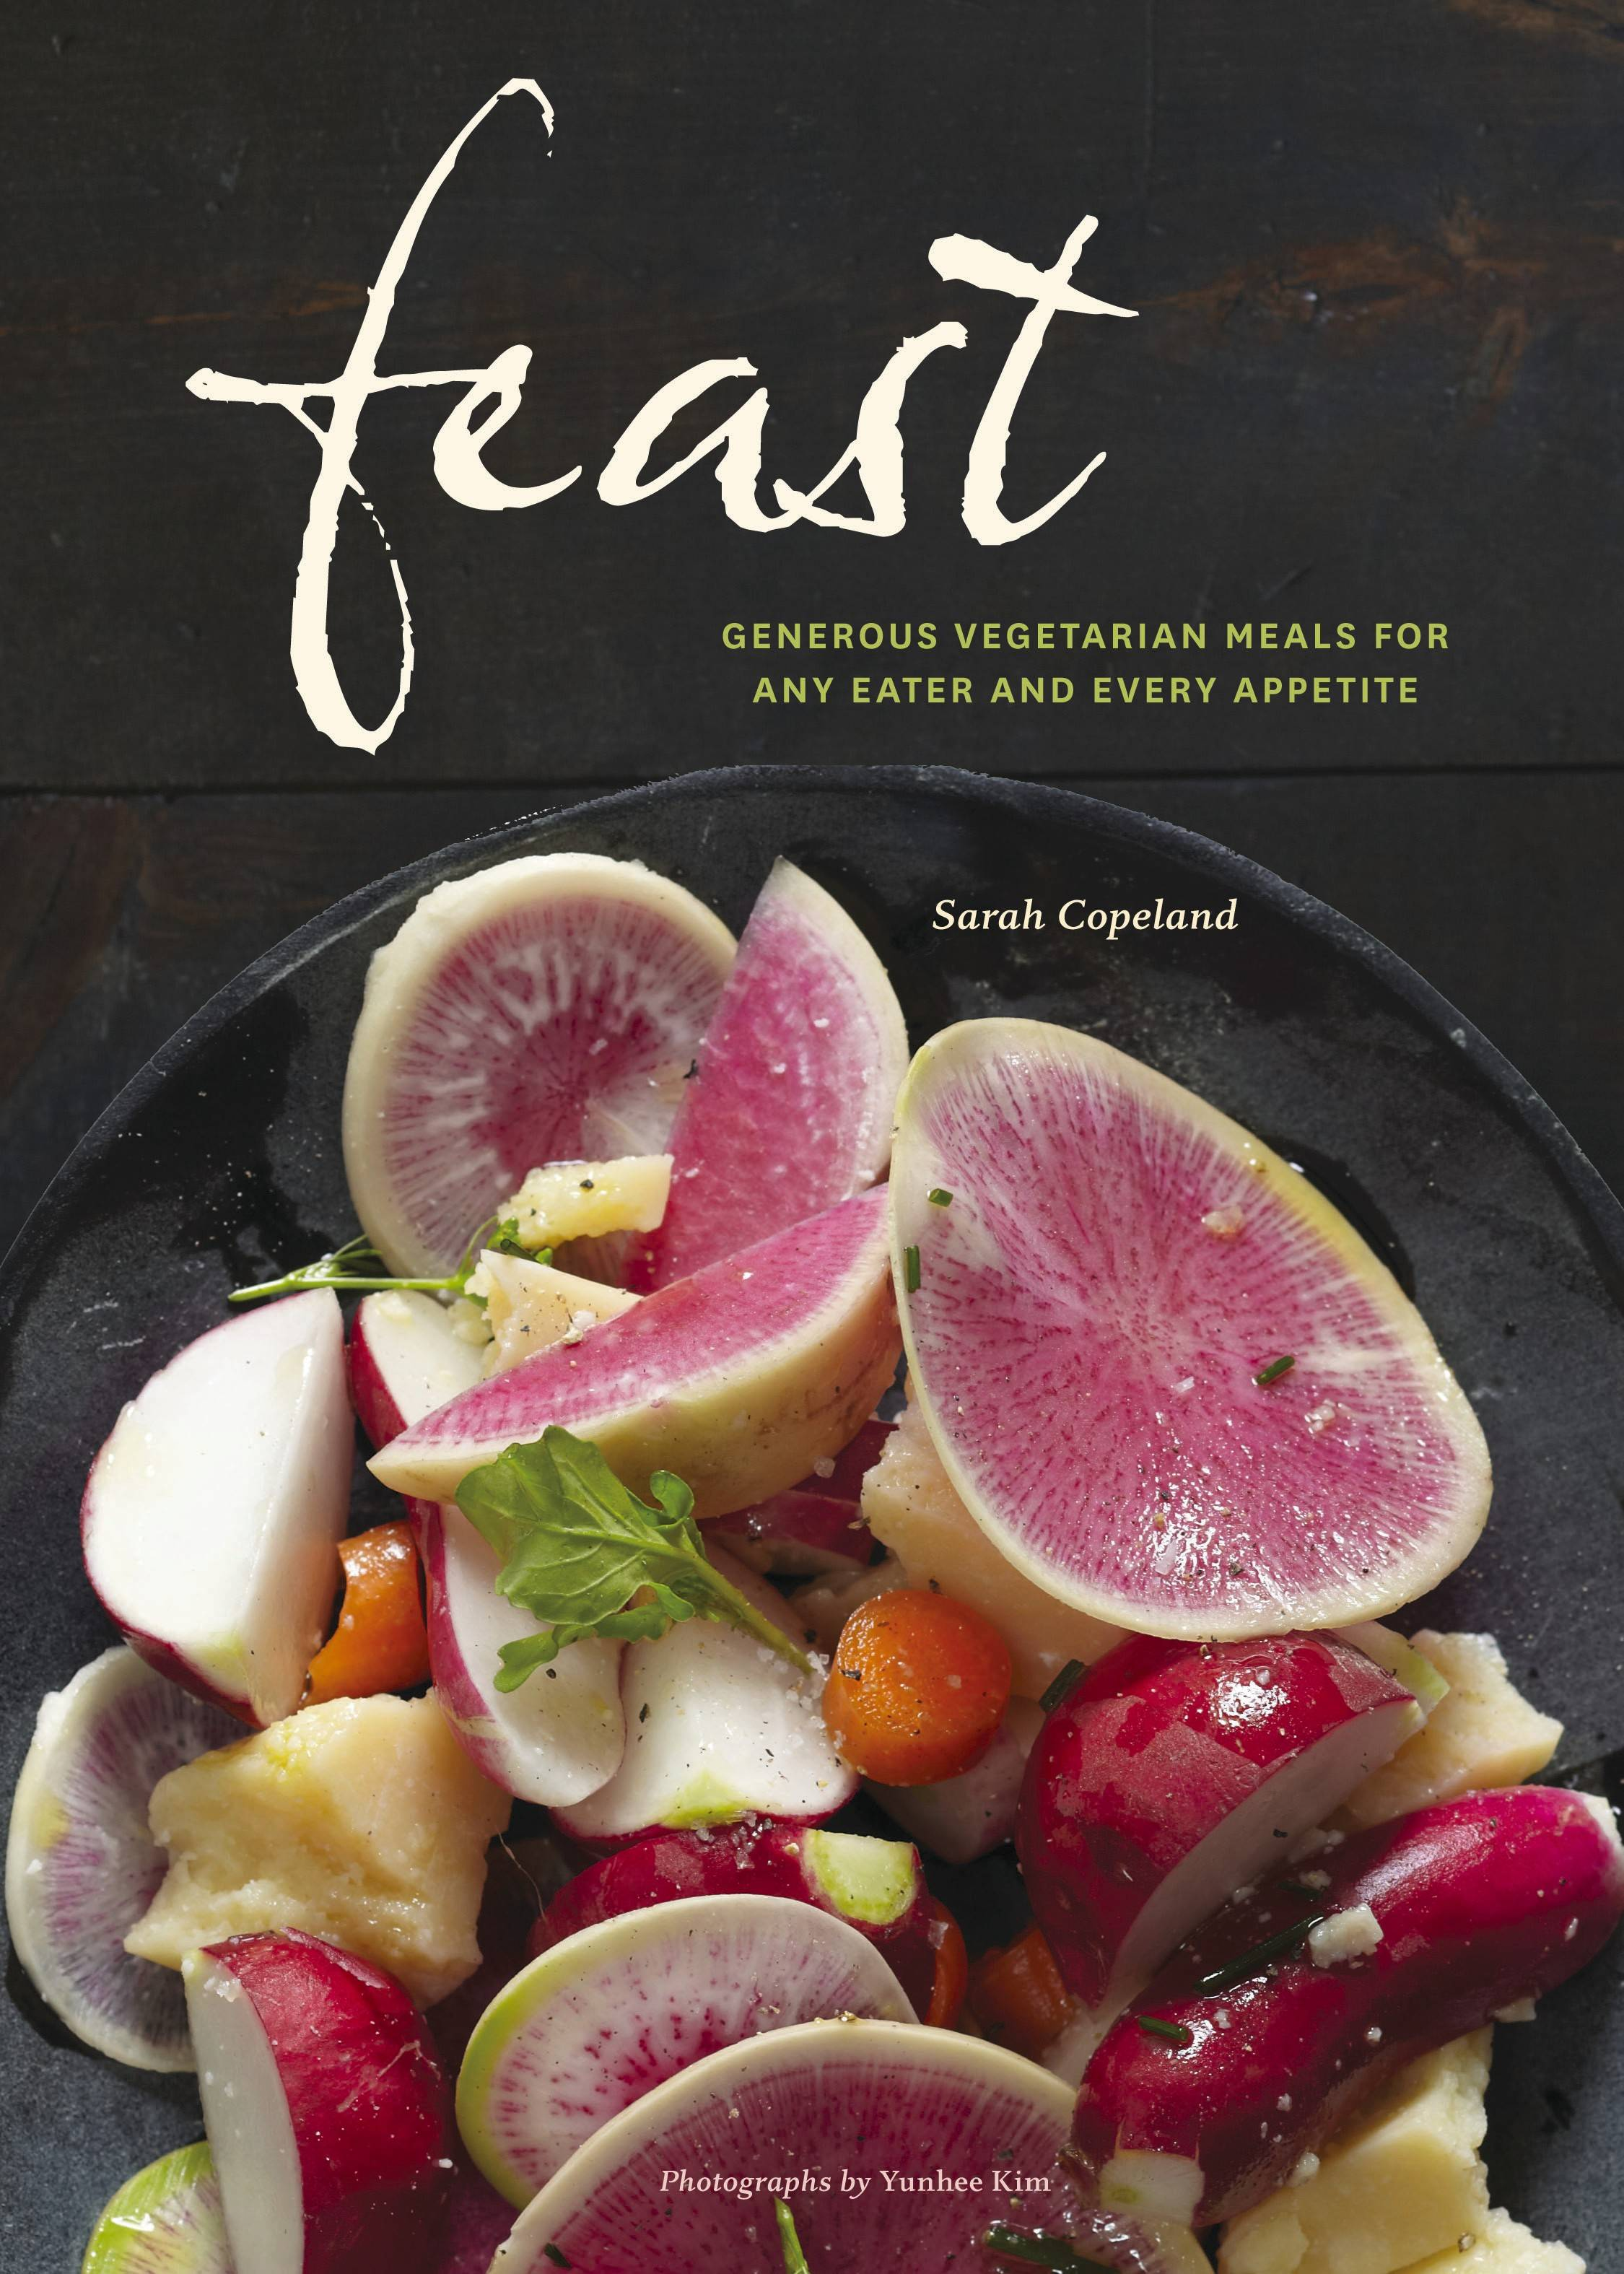 """Feast: Generous Vegetarian Meals for Any Eater and Every Appetite"" by Sarah Copeland (Chronicle, 2013)"